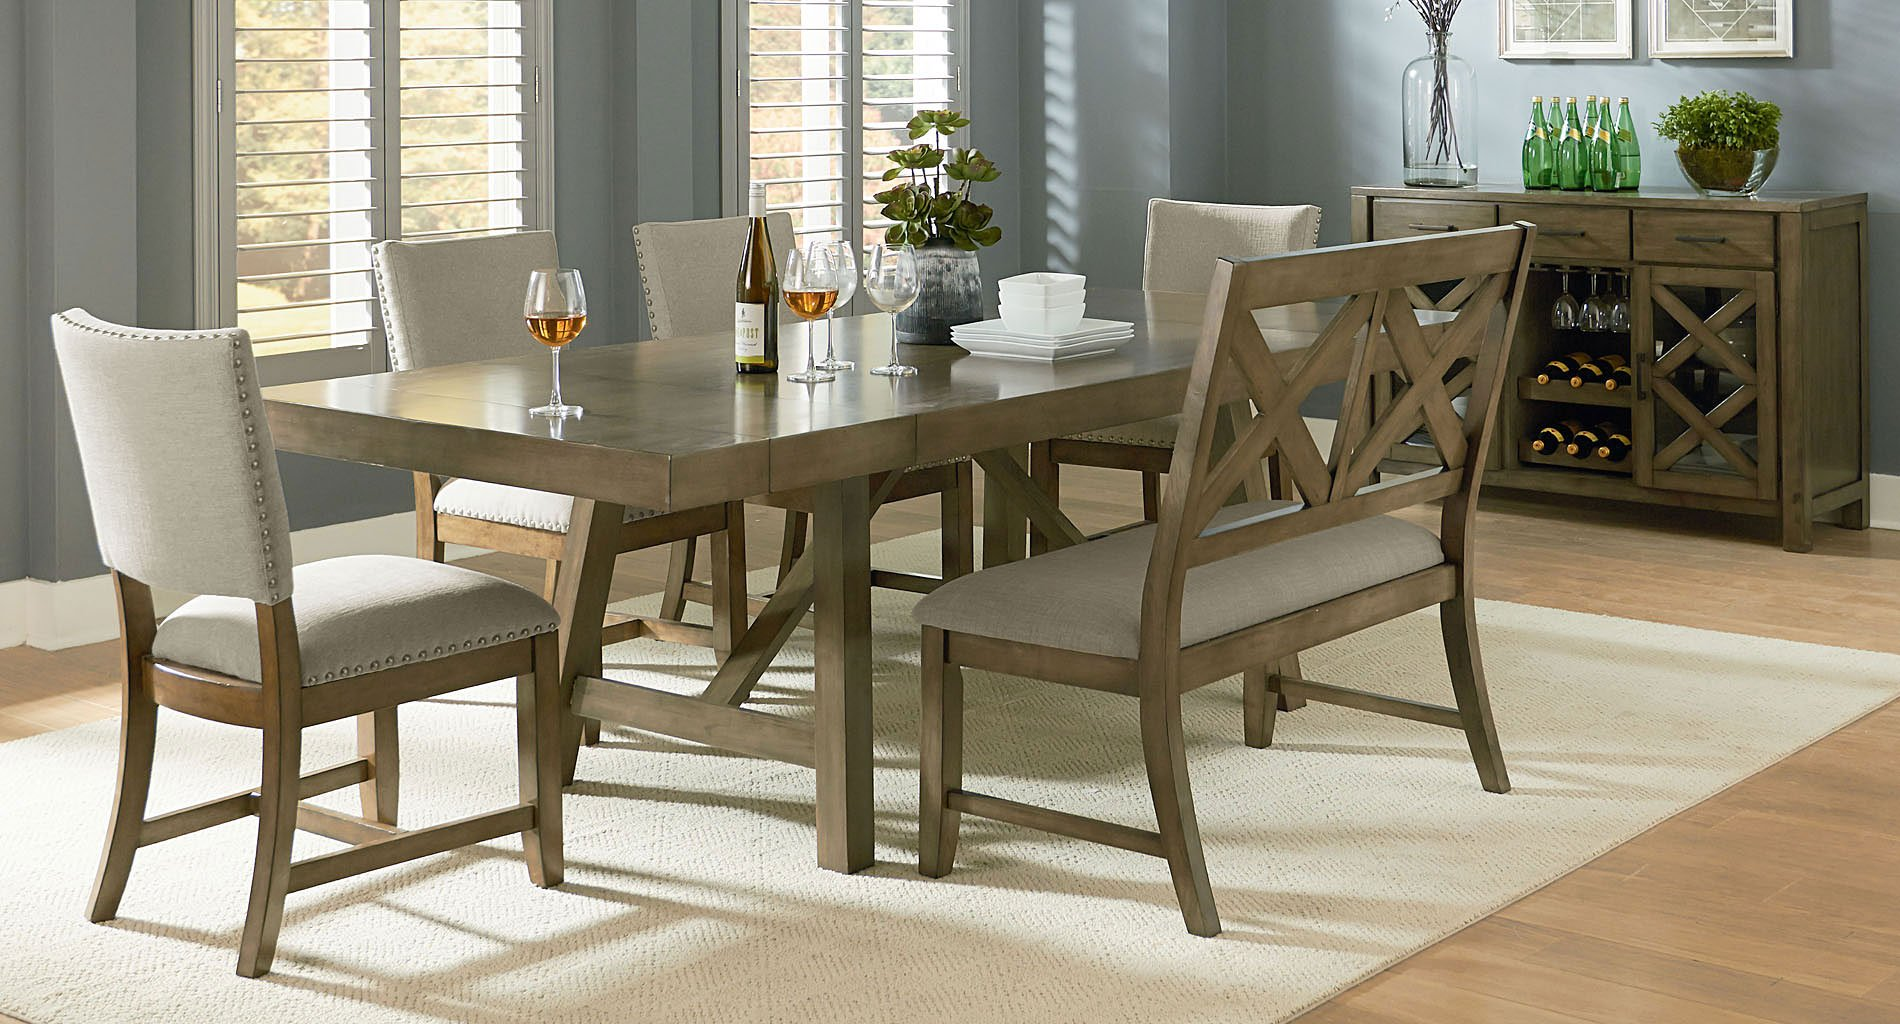 Upholstered Kitchen Chairs Omaha Dining Room Set W Bench And Upholstered Chairs